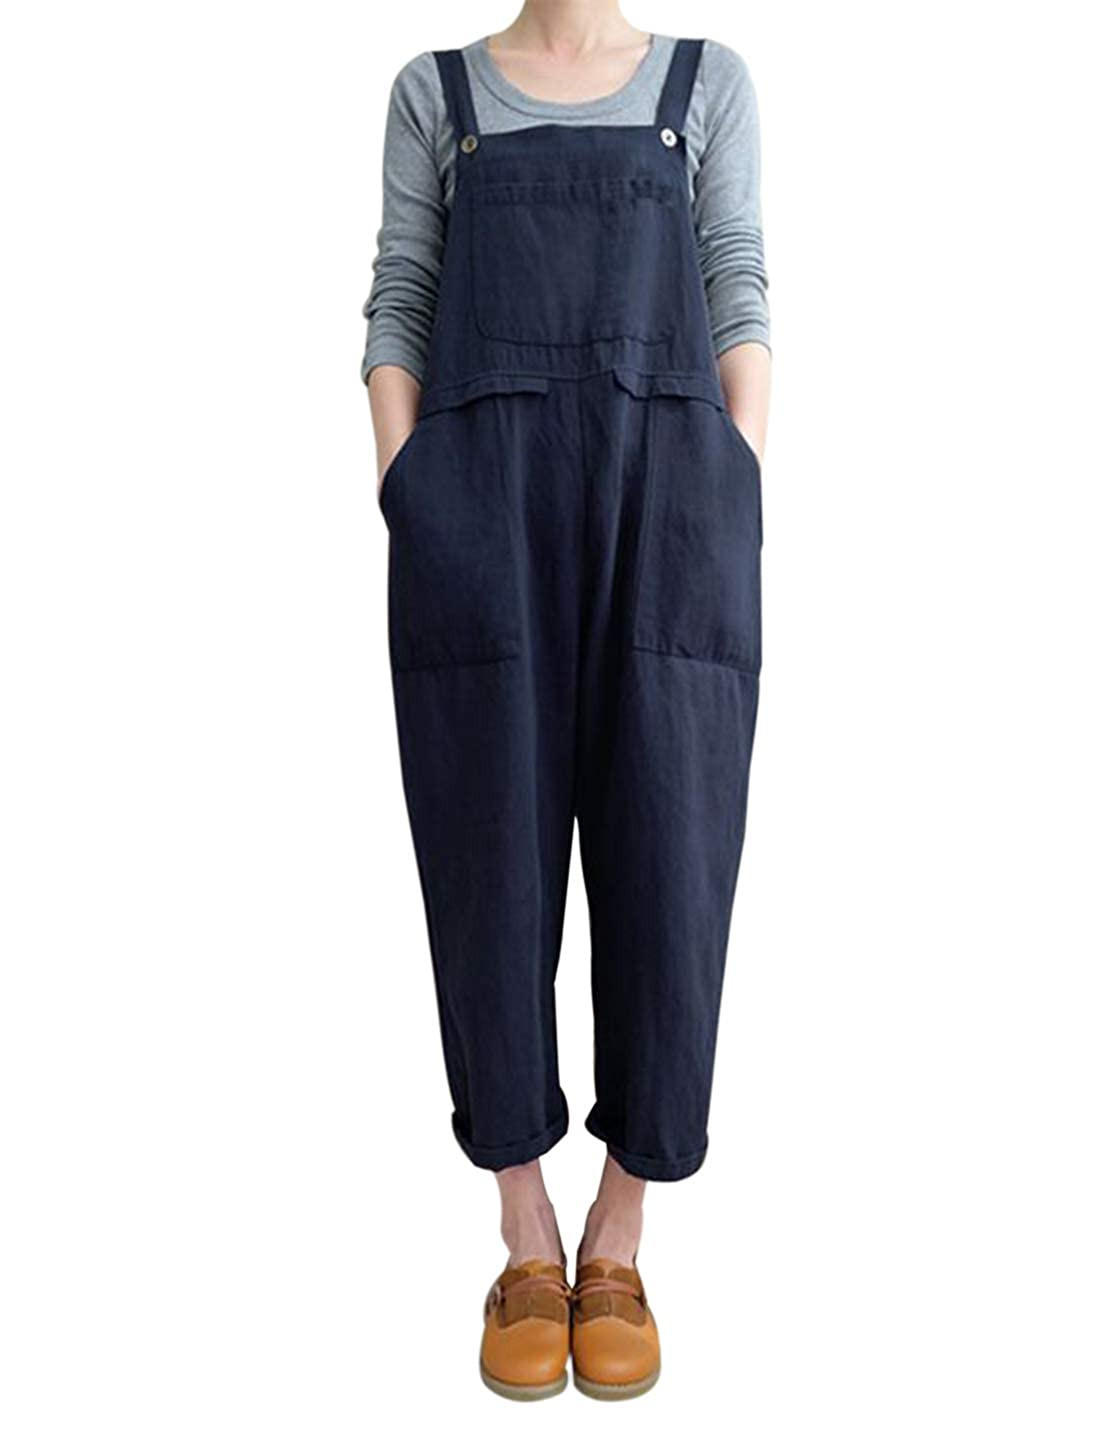 78cd7e7db8c Amazon.com  Gihuo Women s Casual Baggy Overalls Jumpsuit with Pockets   Clothing